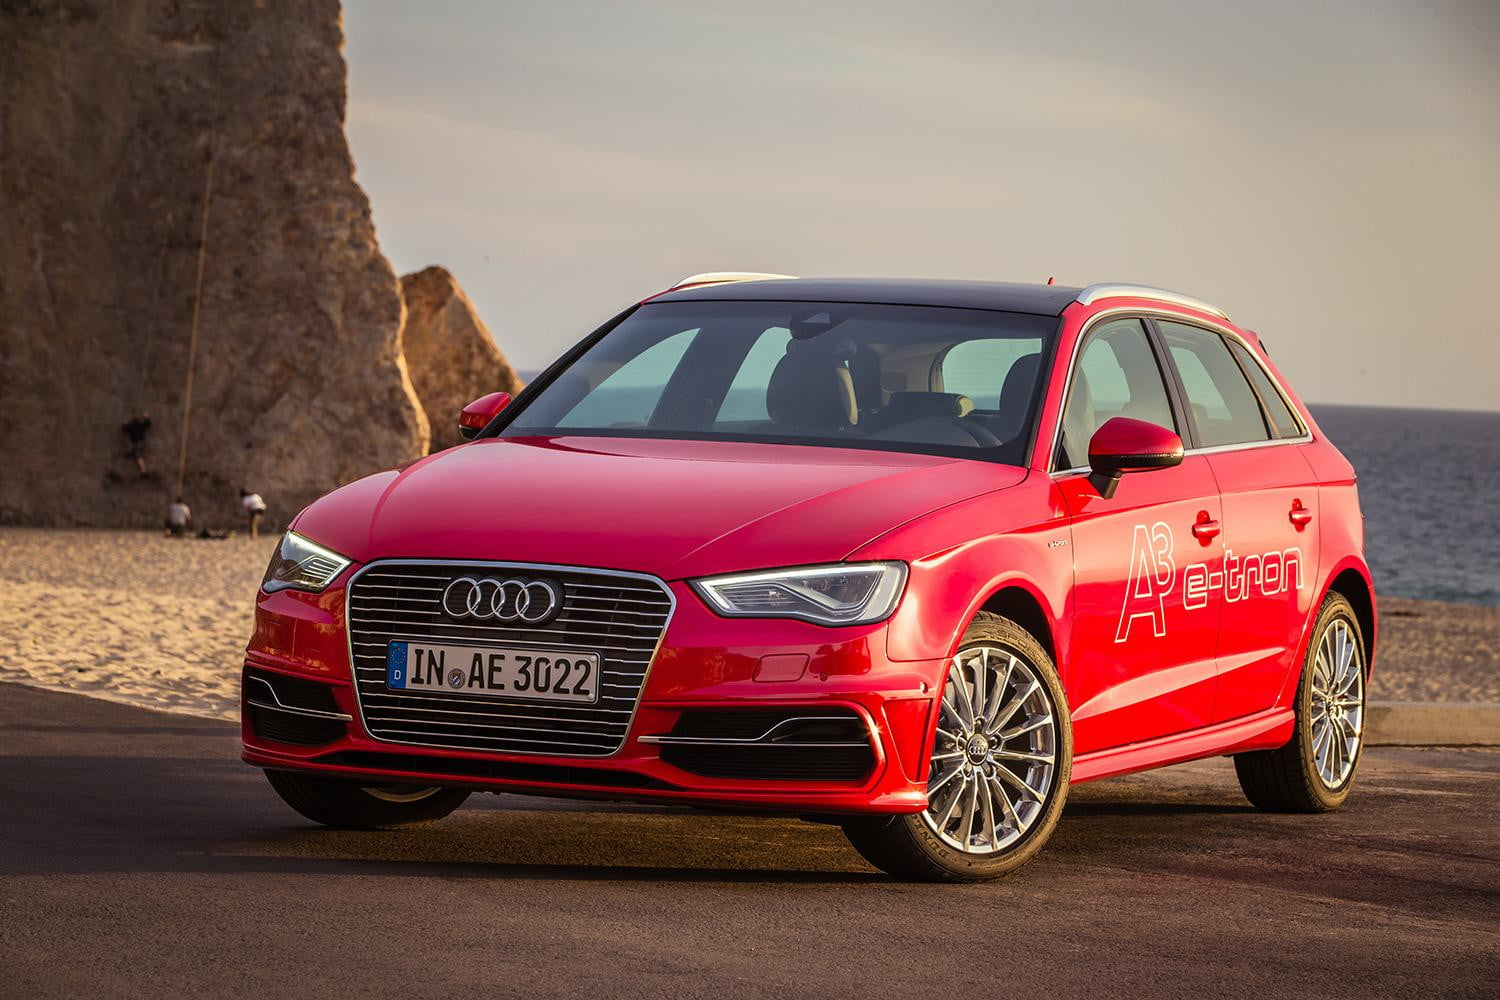 2015 audi a3 sportback e tron review digital trends. Black Bedroom Furniture Sets. Home Design Ideas